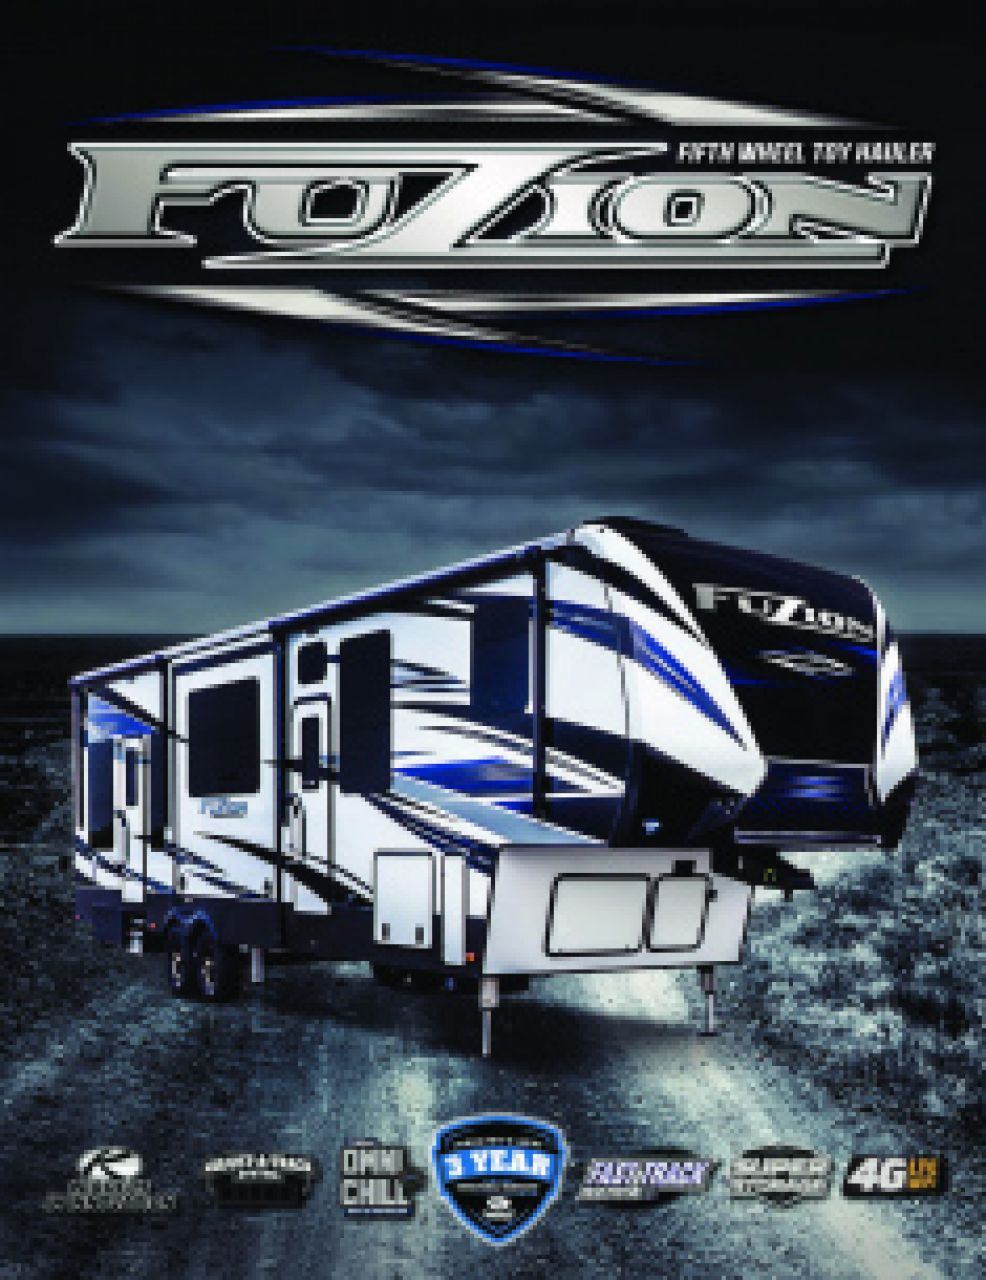 2019 Keystone Fuzion RV Brochure Cover